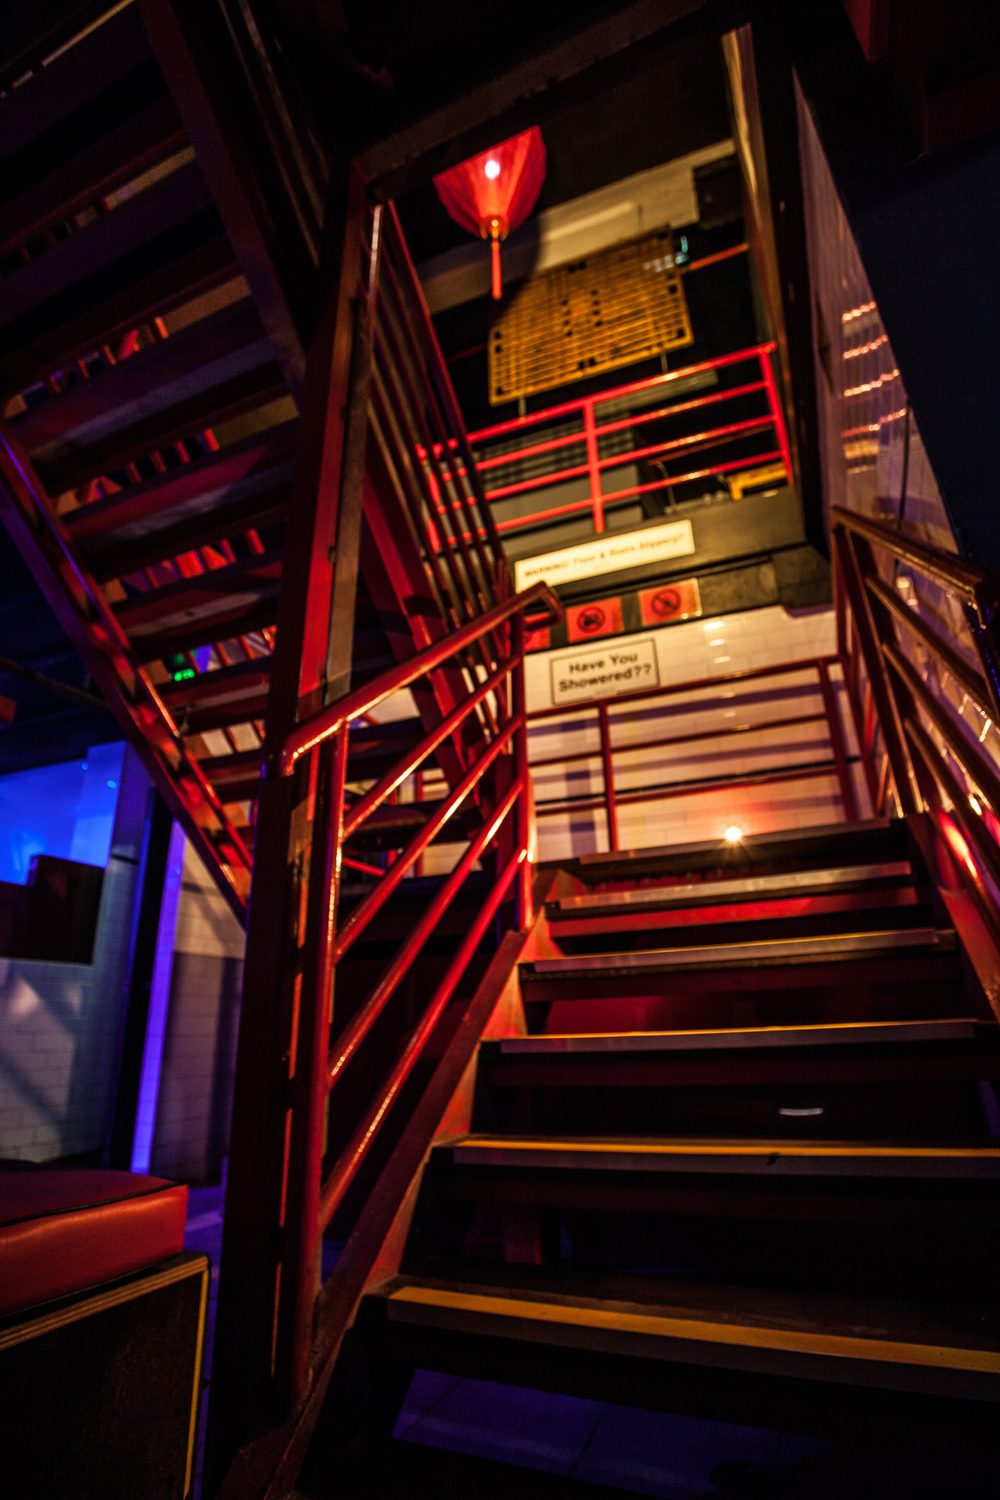 Our spiral stairs up to level 2. Hint: stand at the top and watch who enters and walks up the stairs. Very handy to know who's arriving ;)